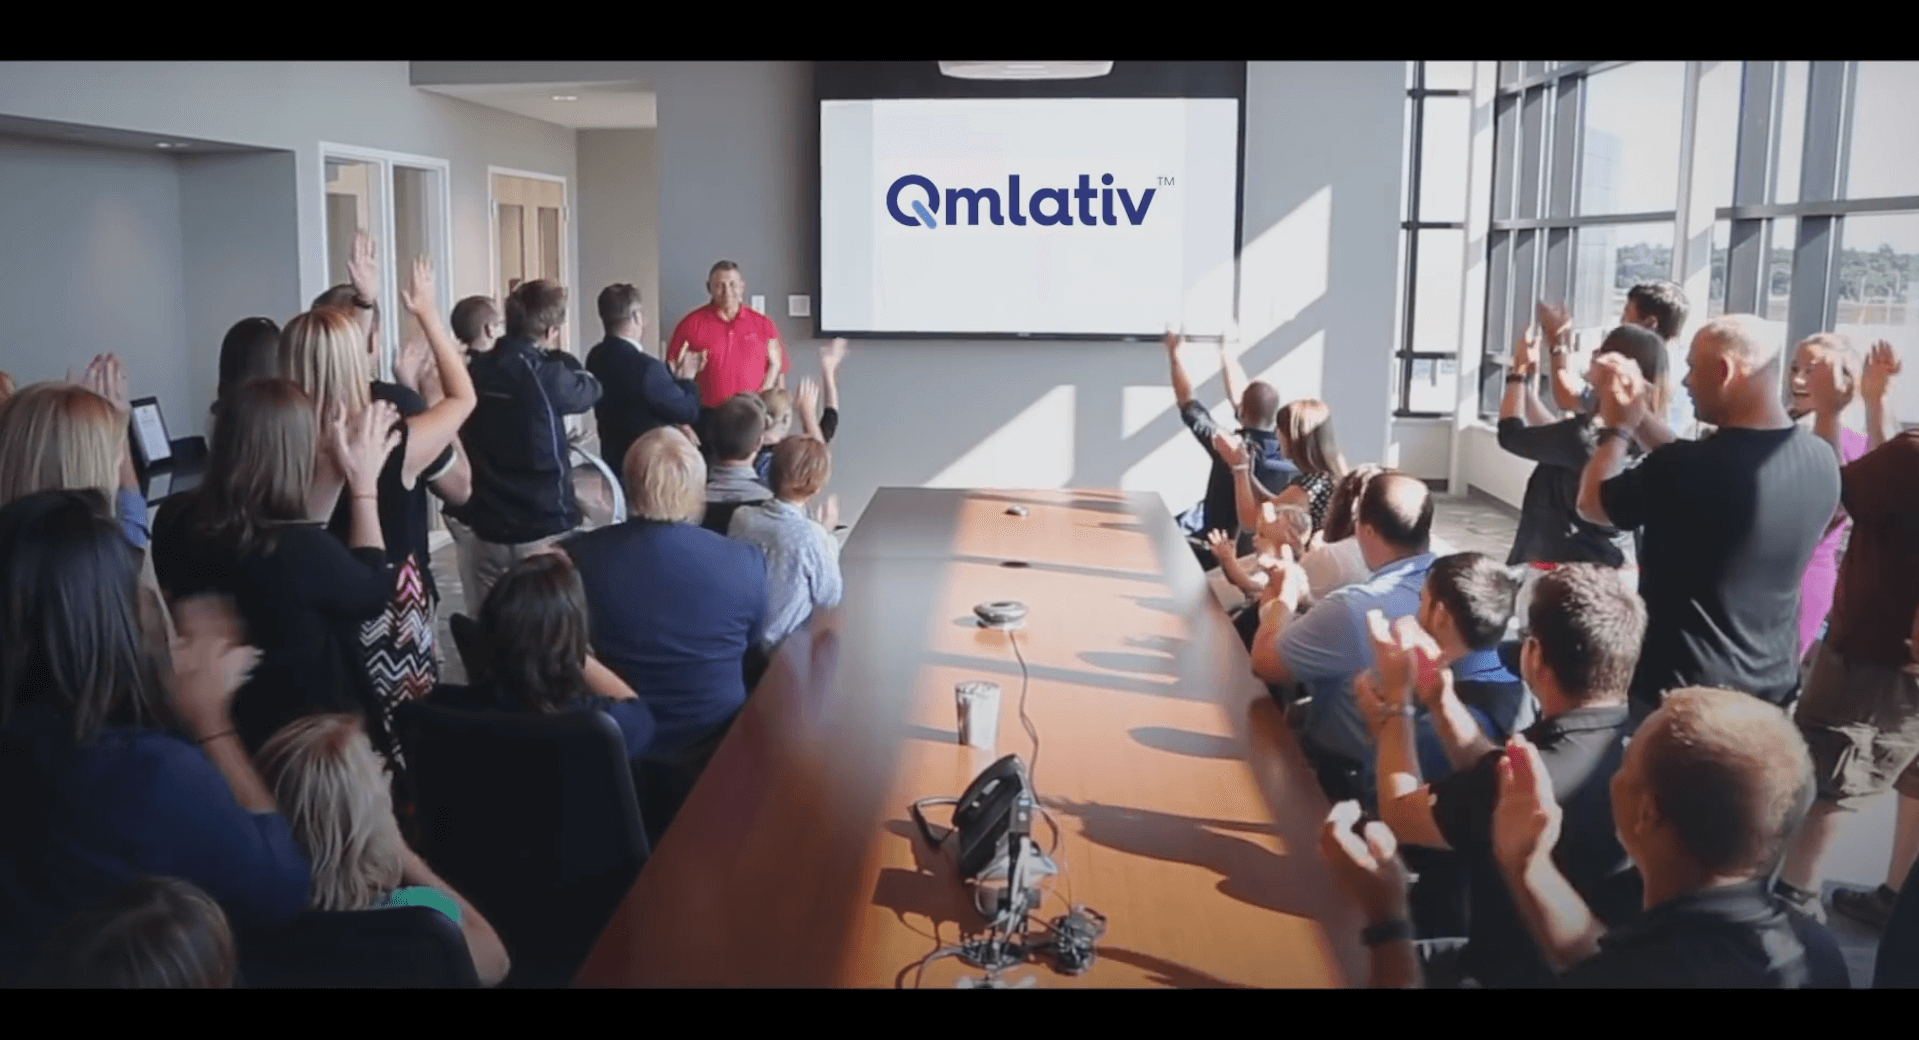 2018 Mid-Year Qmlativ Update